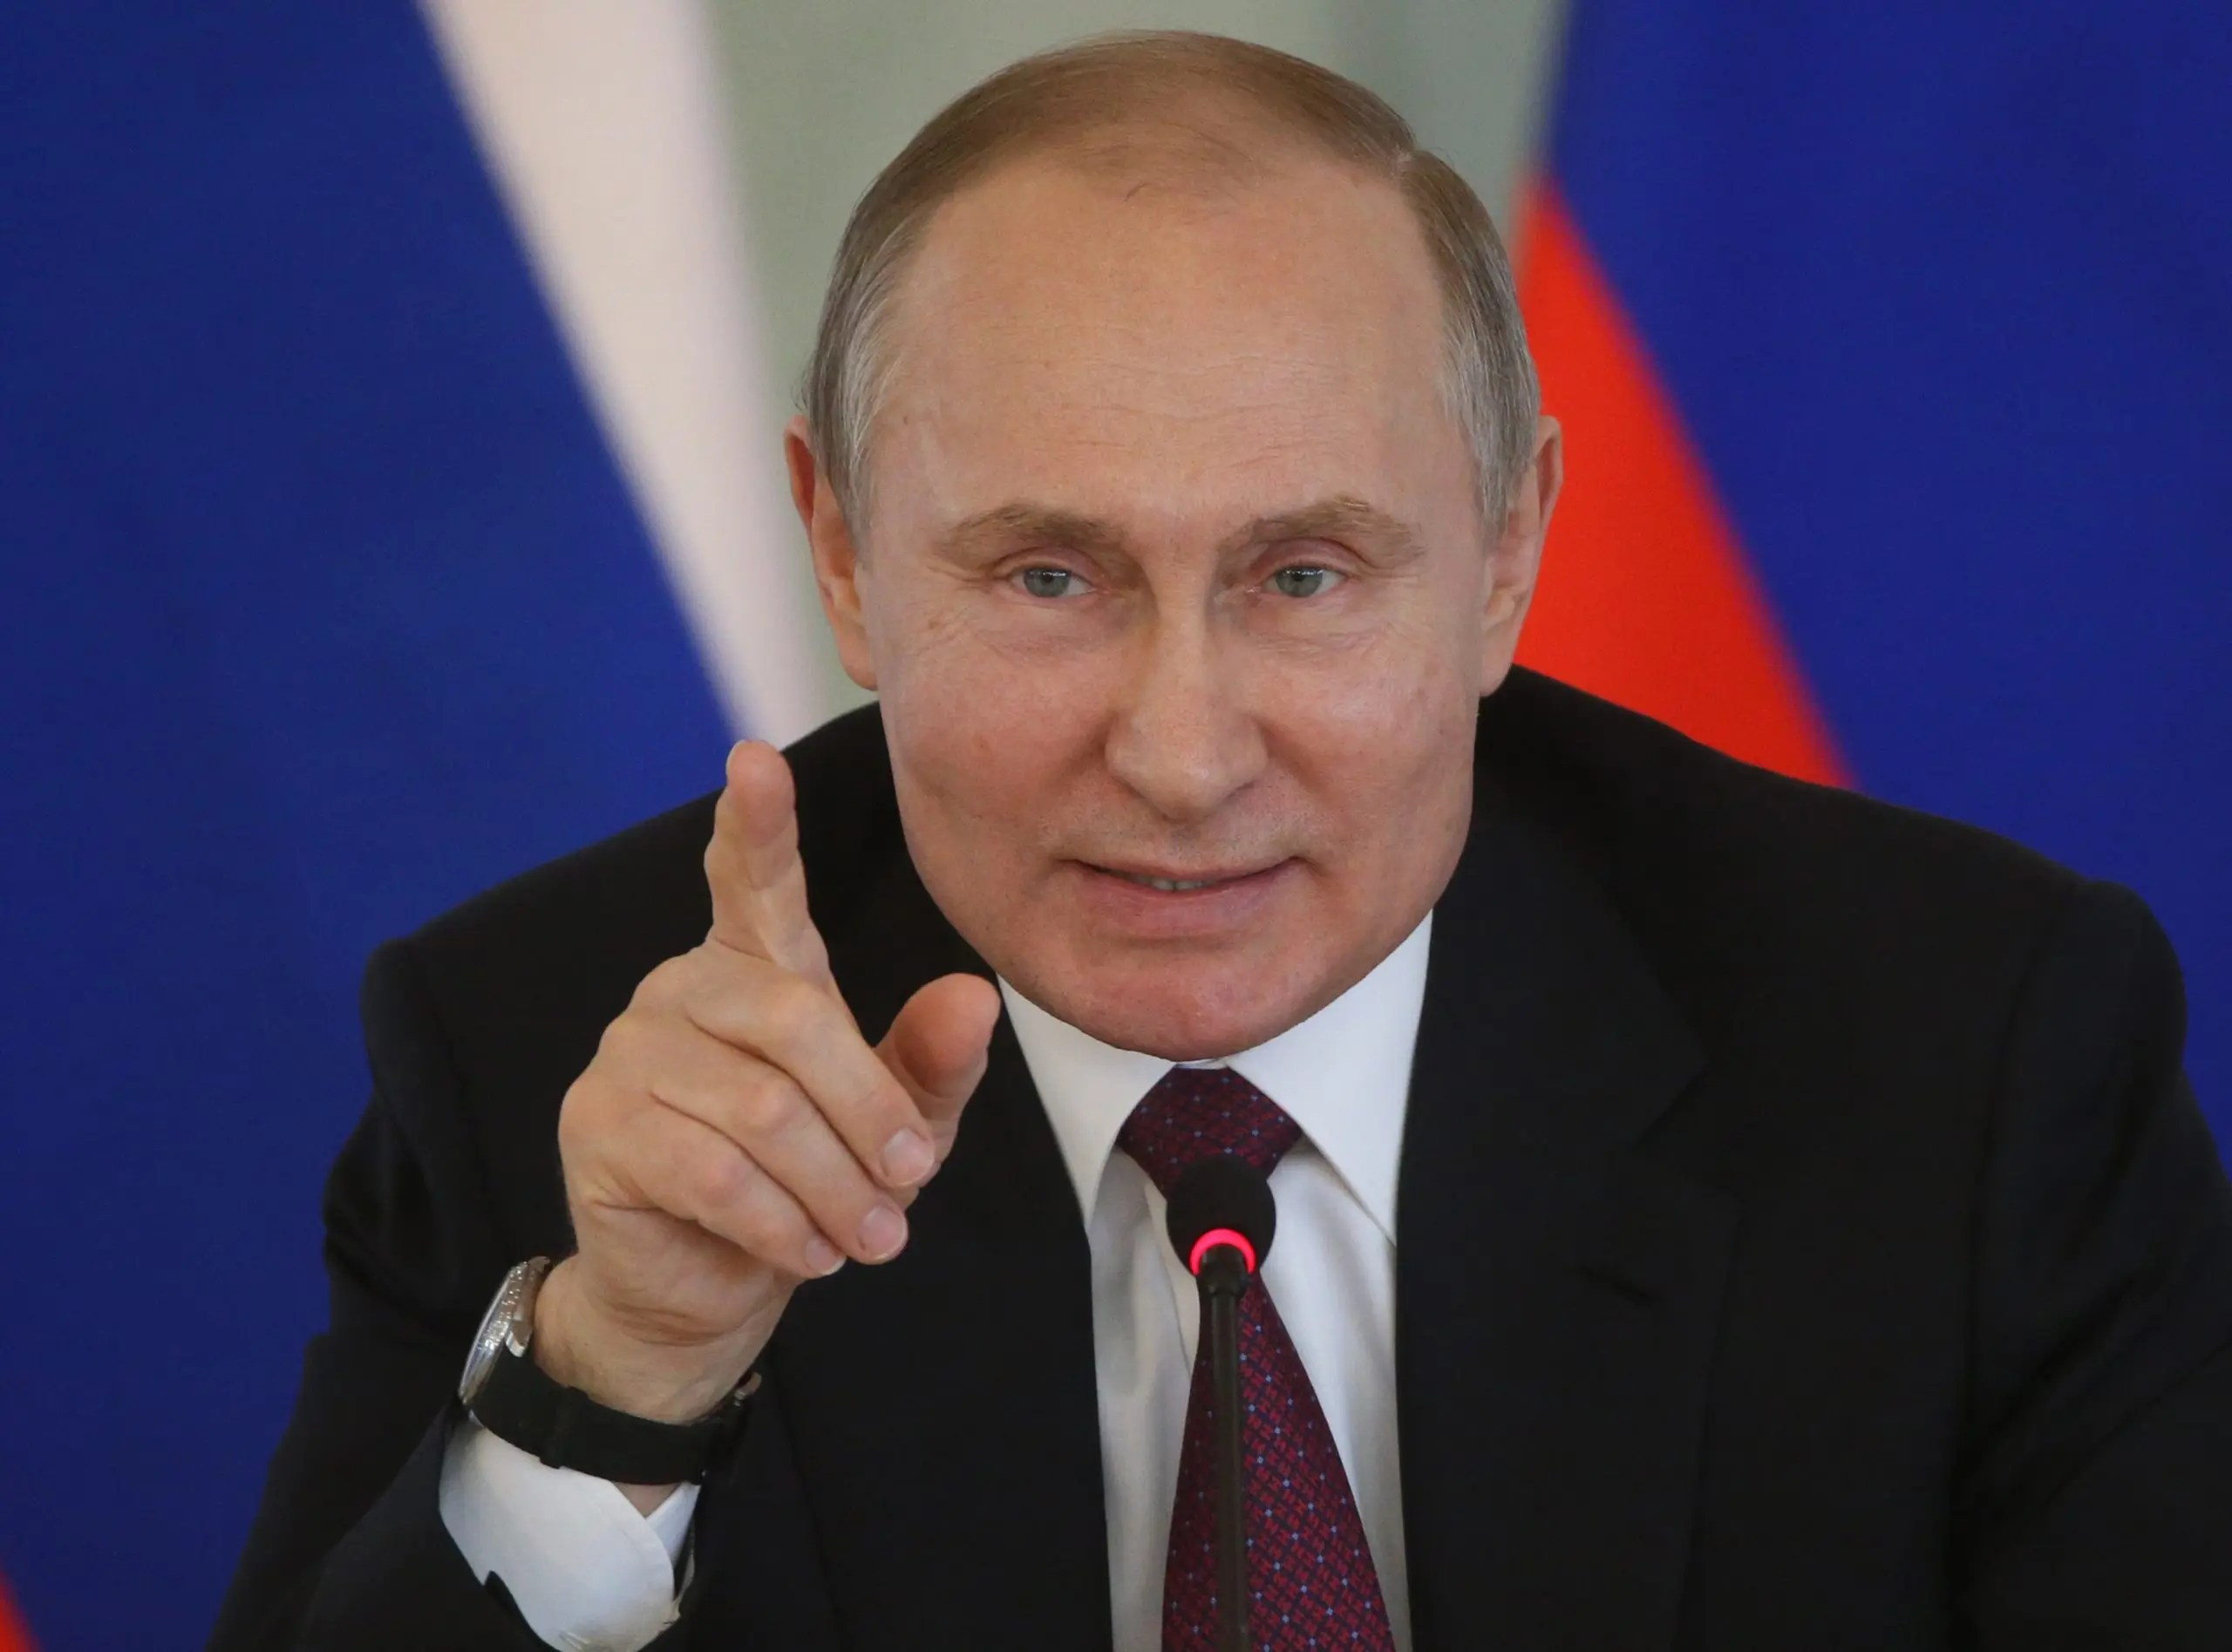 Vladimir Putin Africa Is Rich More Than Europe America And Asia But Their Problem Is Their Leaders News365 Nigeria